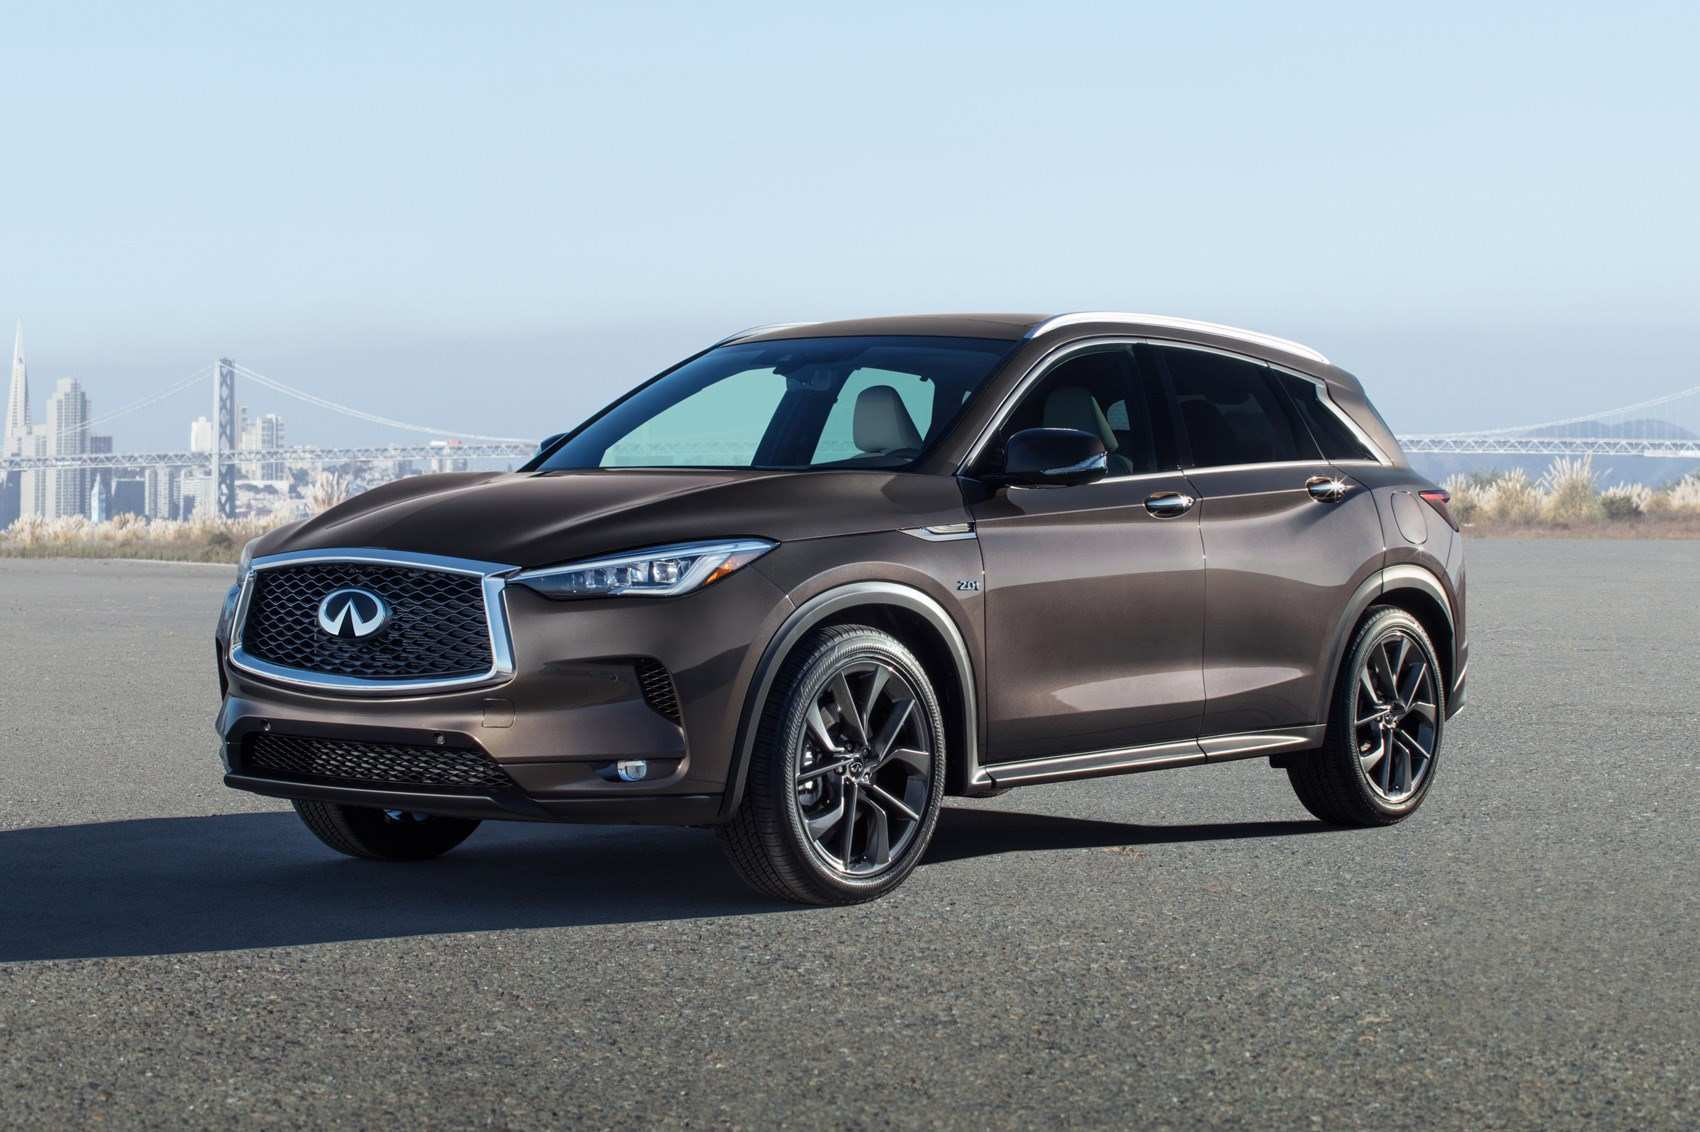 17 New Infiniti Cars For 2020 Pricing